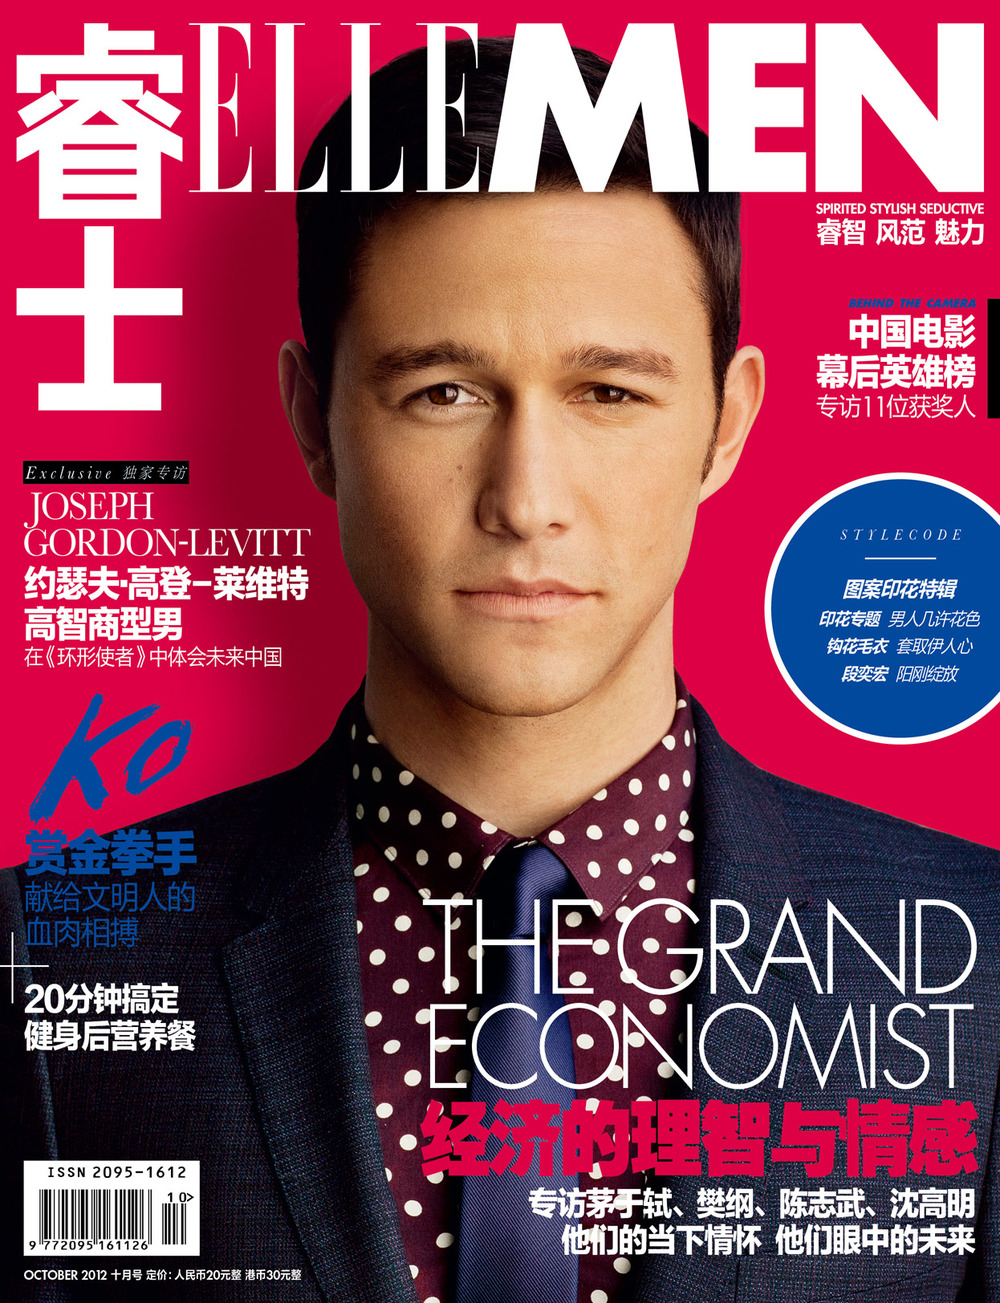 joseph gordon-levitt elle men china october 2012